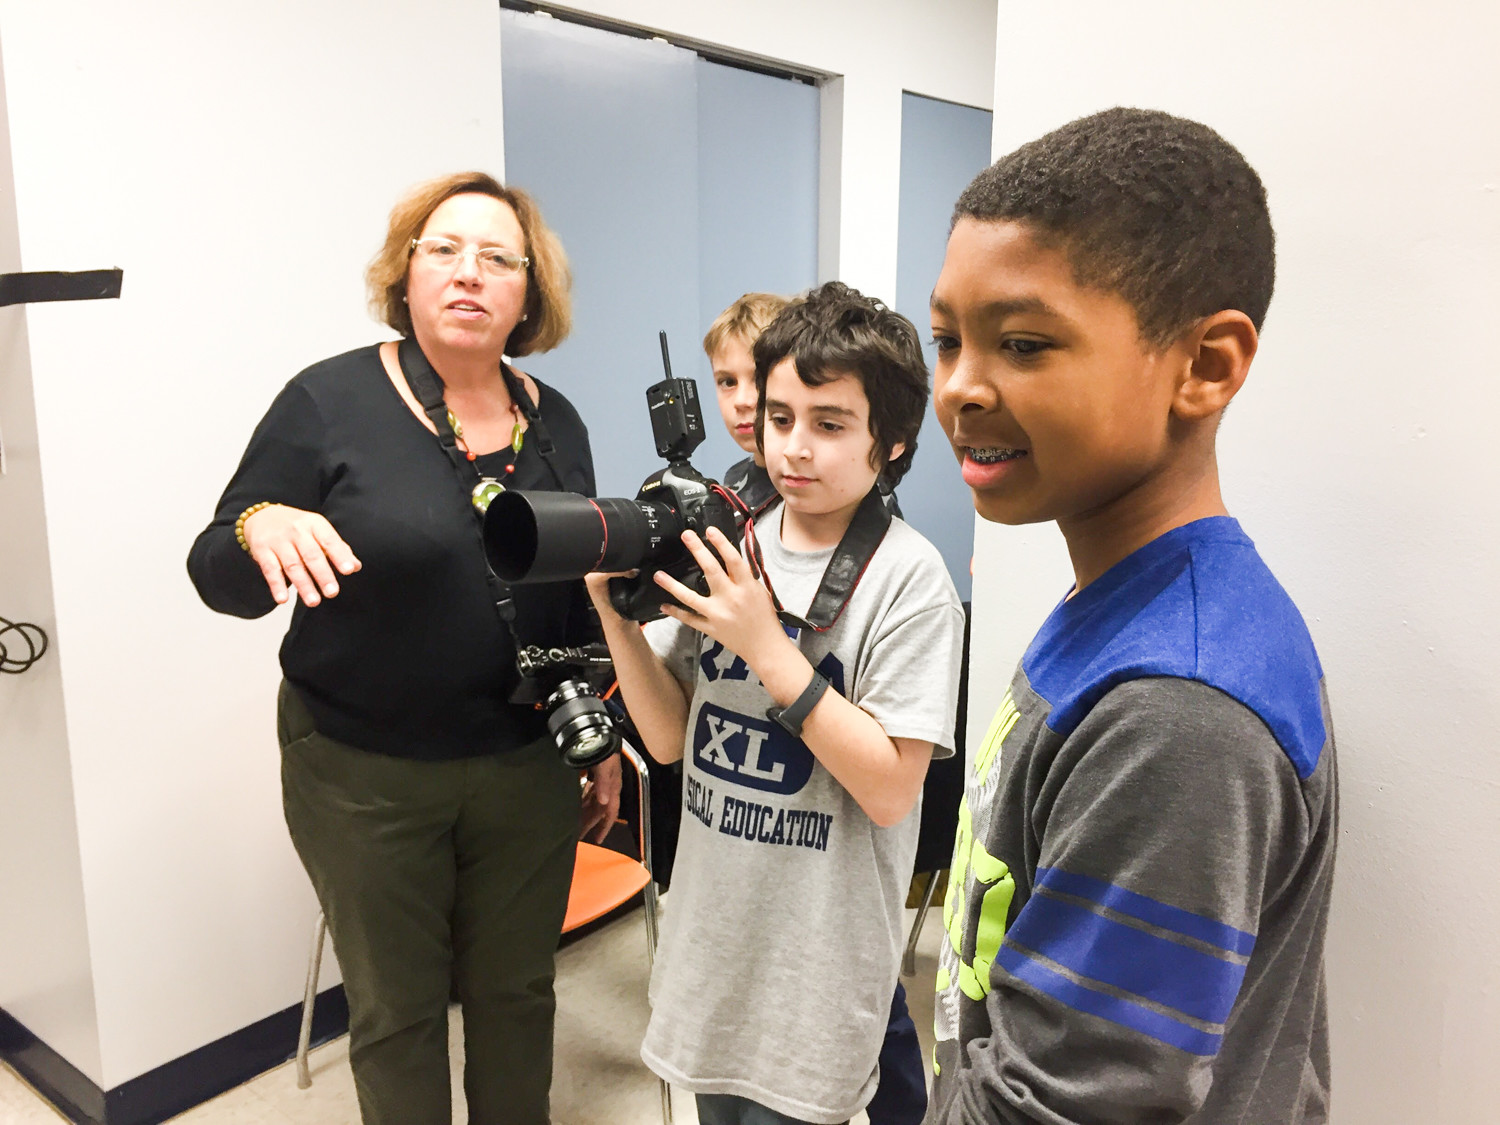 Eileen McNamee, a volunteer with the Bronx Photo Collective, gives students tips on taking professional quality photos. McNamee, along with fellow volunteer Walter Pofeldt, are documenting the meeting between the students and senior citizens as part of an inter-generational pilot program.